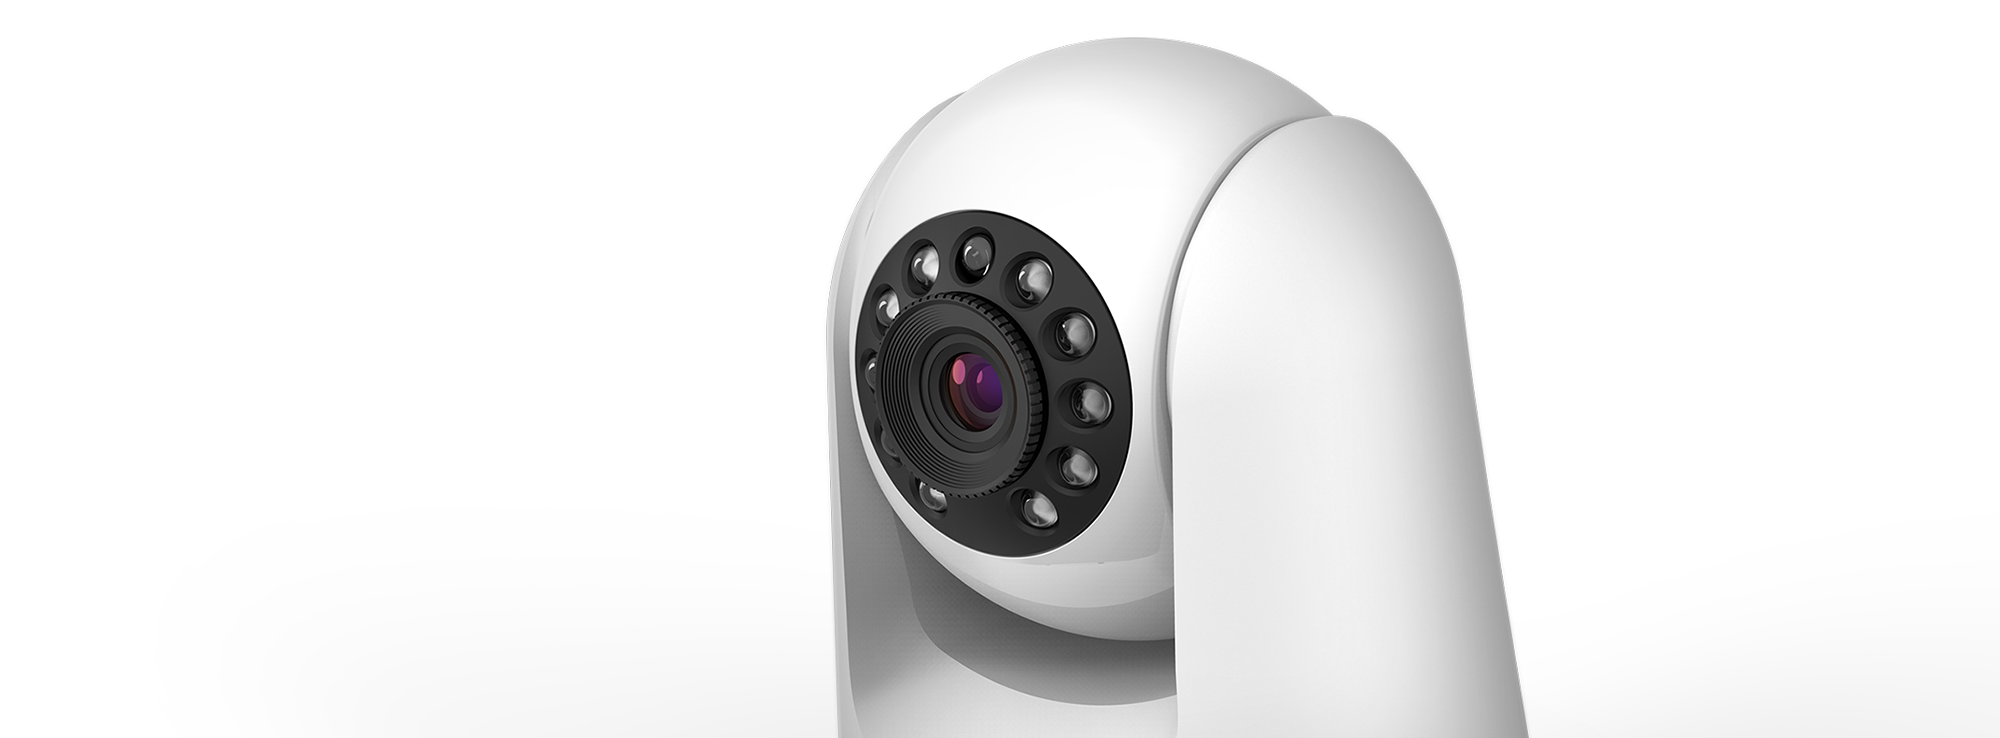 Side view of DCS-8525LH mydlink Full HD PT Indoor Camera